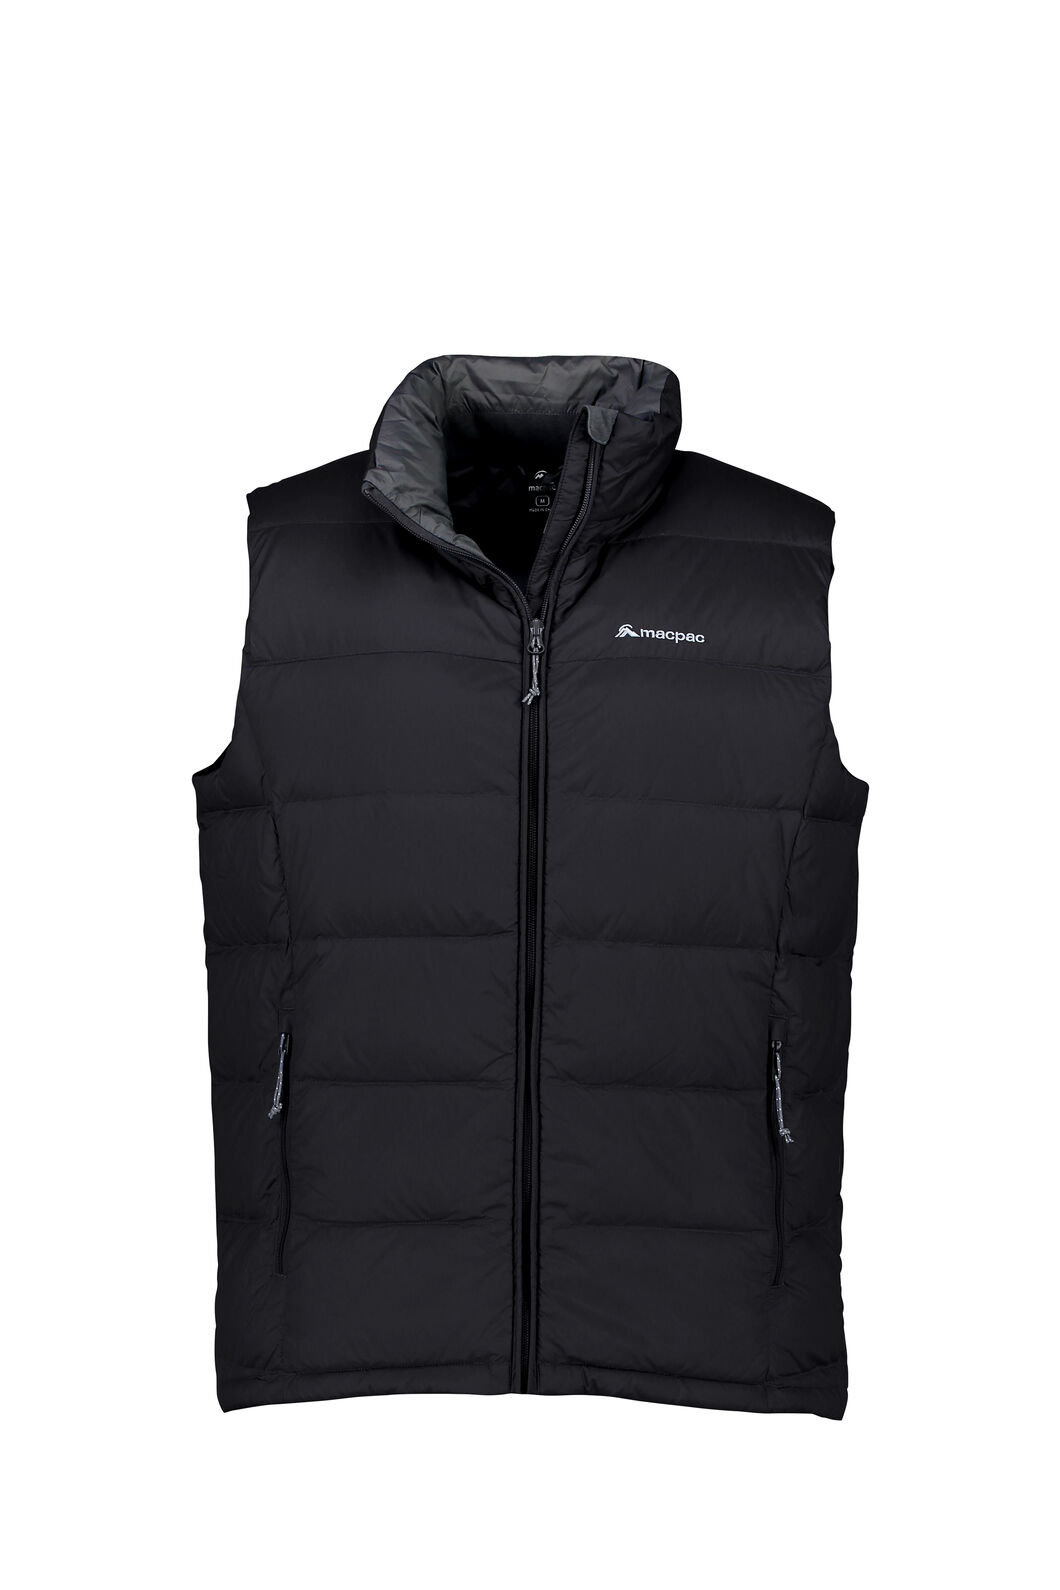 Macpac Halo Down Vest - Men's, Black, hi-res